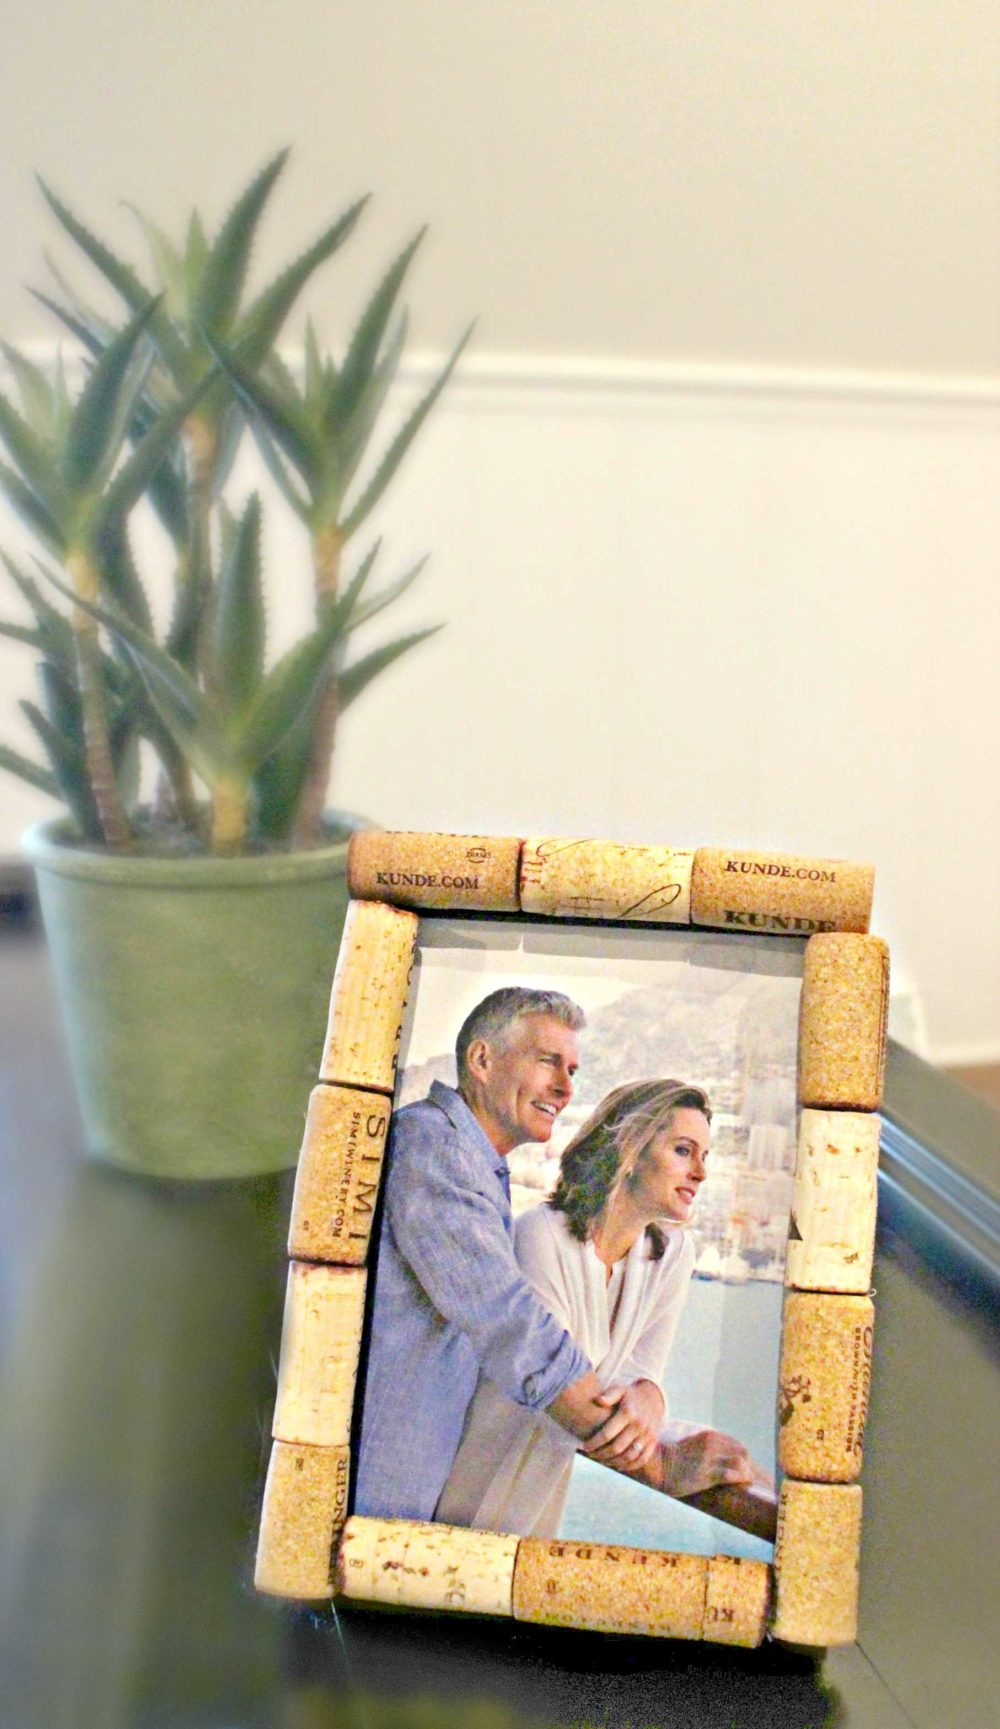 Cork frame made with recycled wine corks